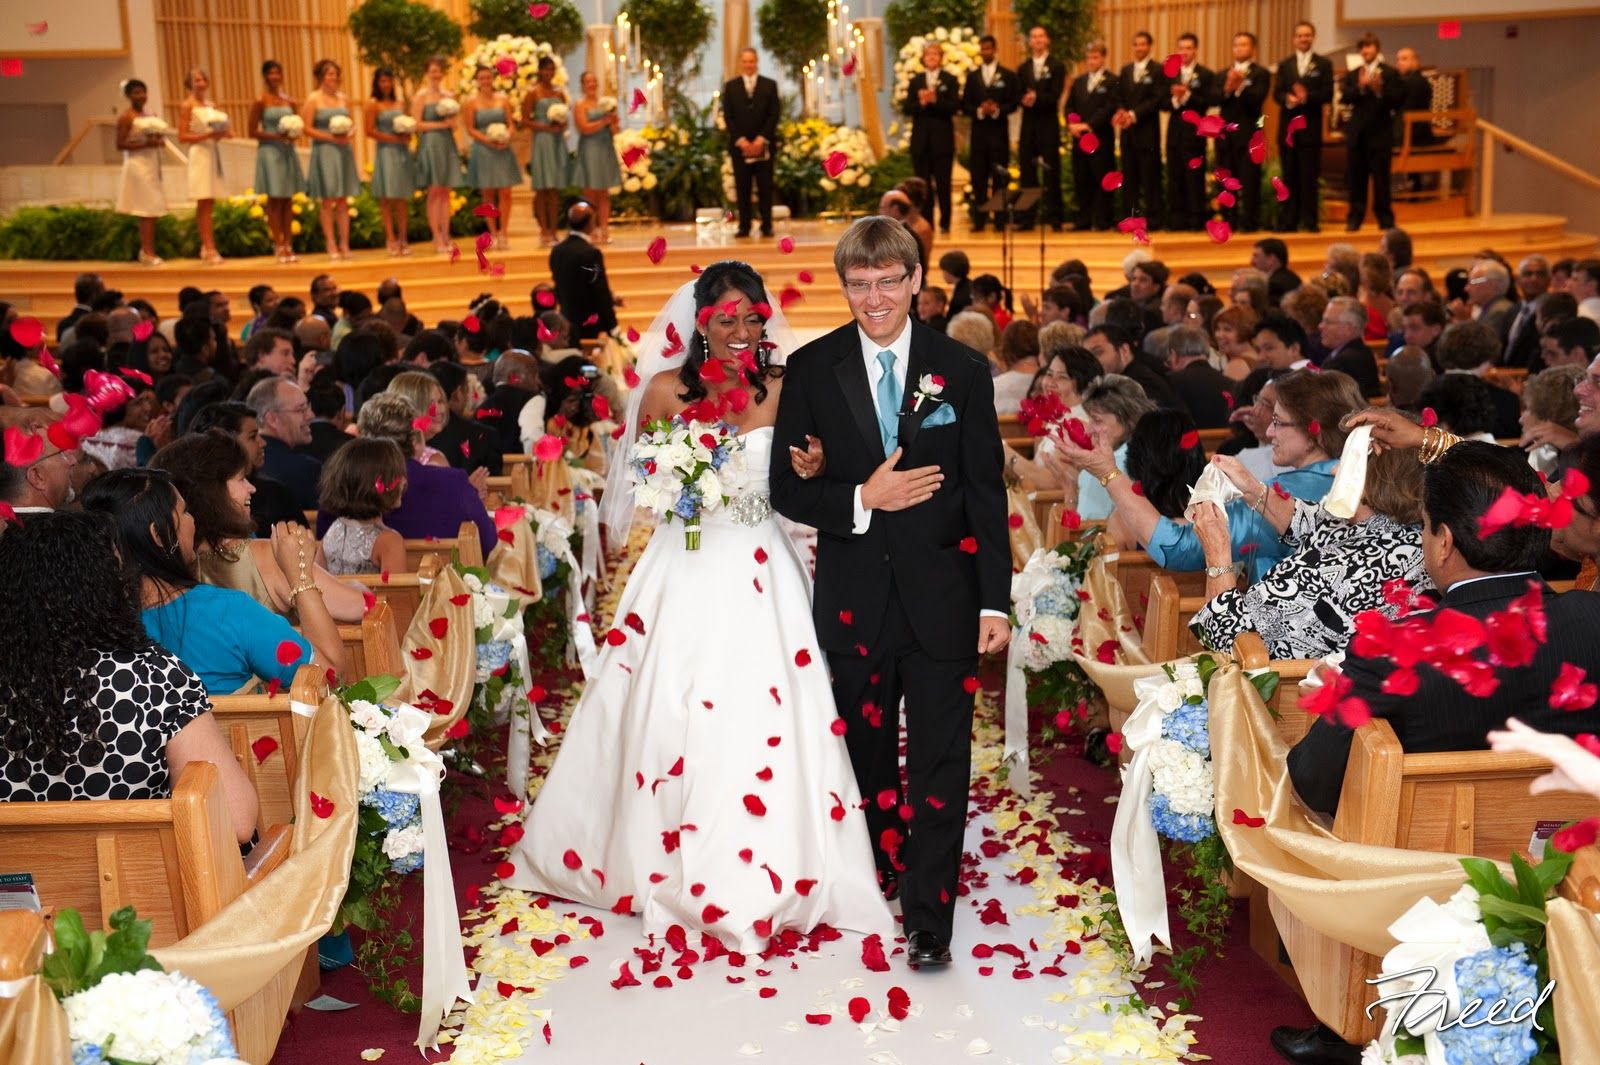 Image Result For Seventh Day Adventist Church Wedding